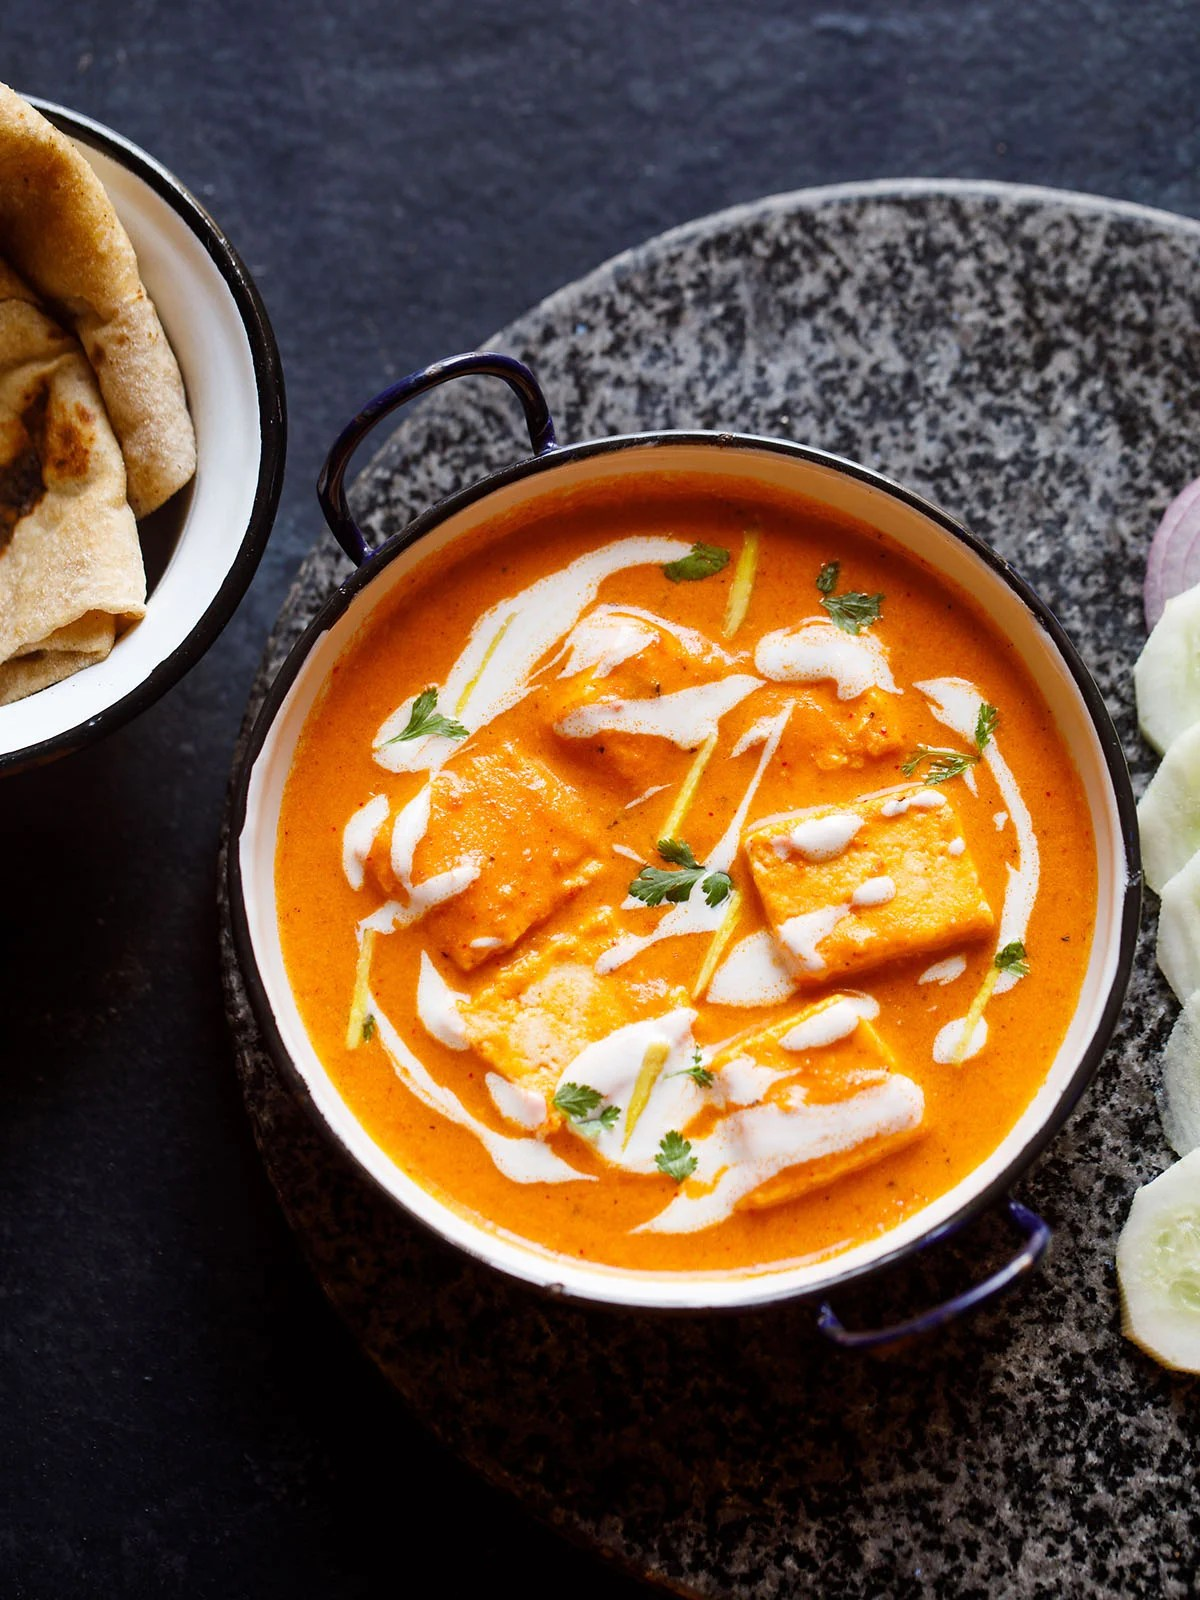 paneer butter masala served in a blue rimmed white pan, garnished with cream and cilantro with a side of sliced cucumber and roti